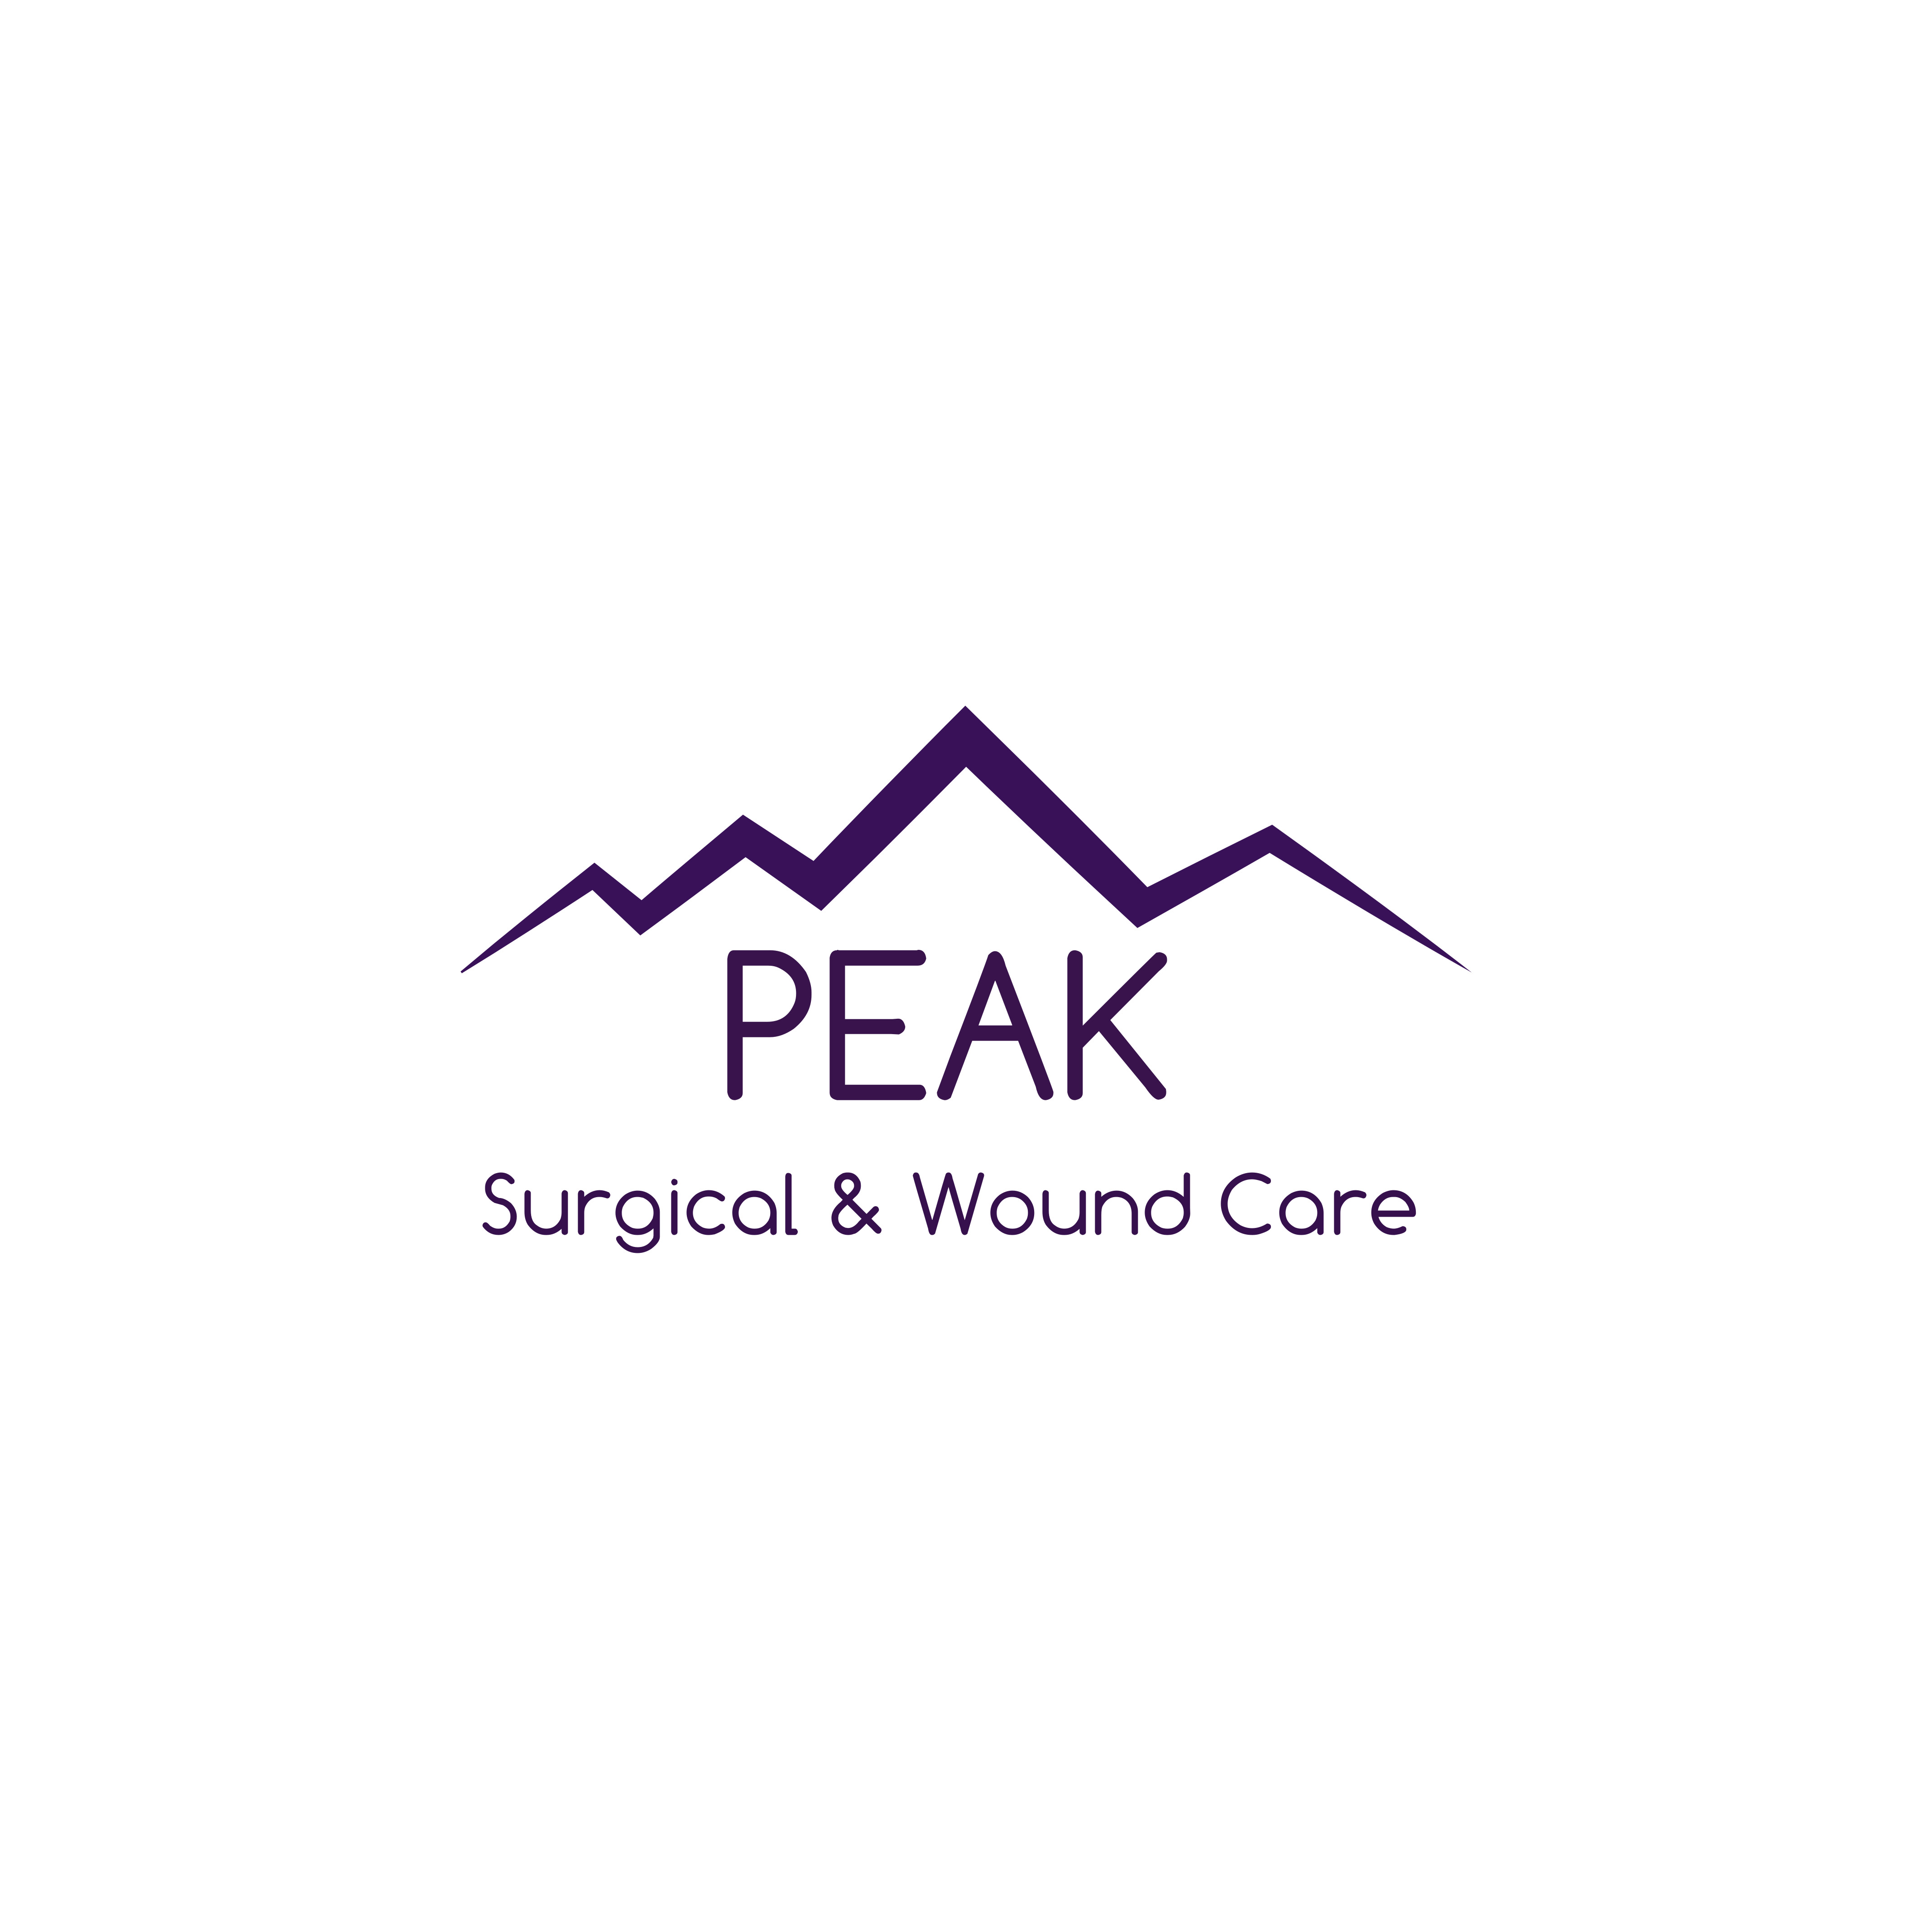 Peak Surgical & Wound Care